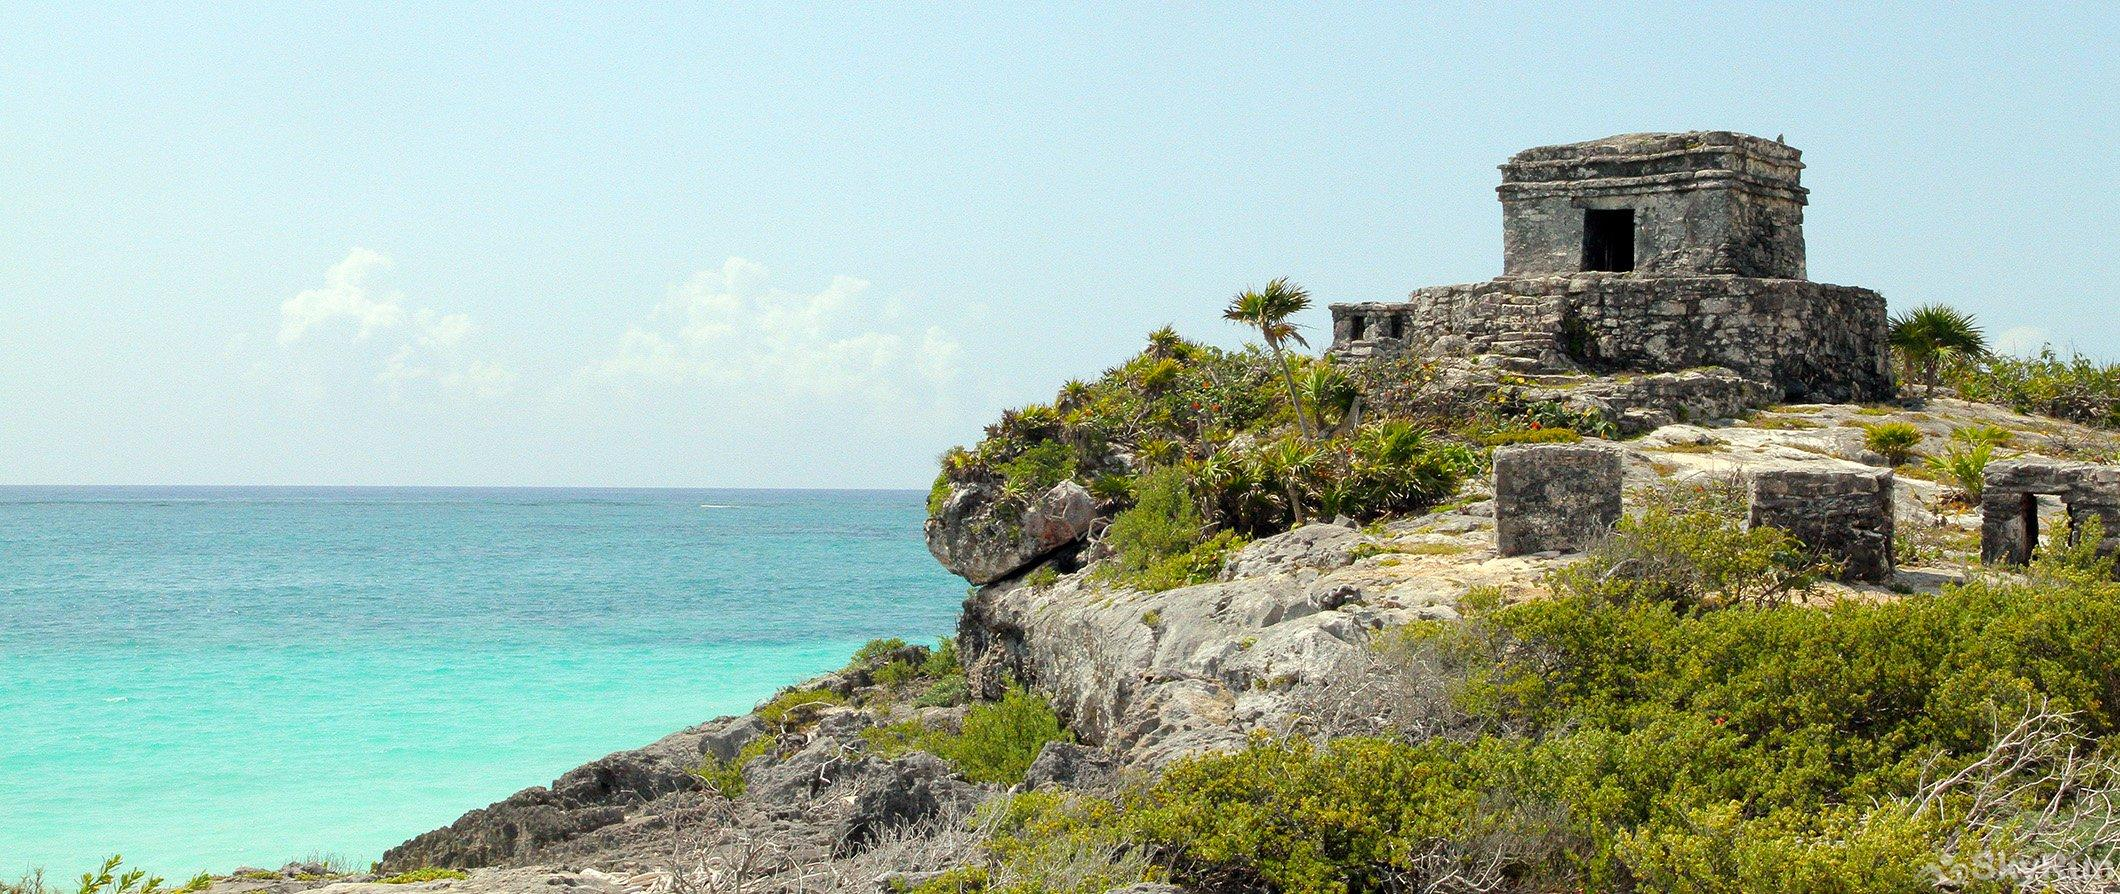 Luxurious Beachfront in Private Location 312 3 Bedroom 2nd Floor Condo Near to tulum